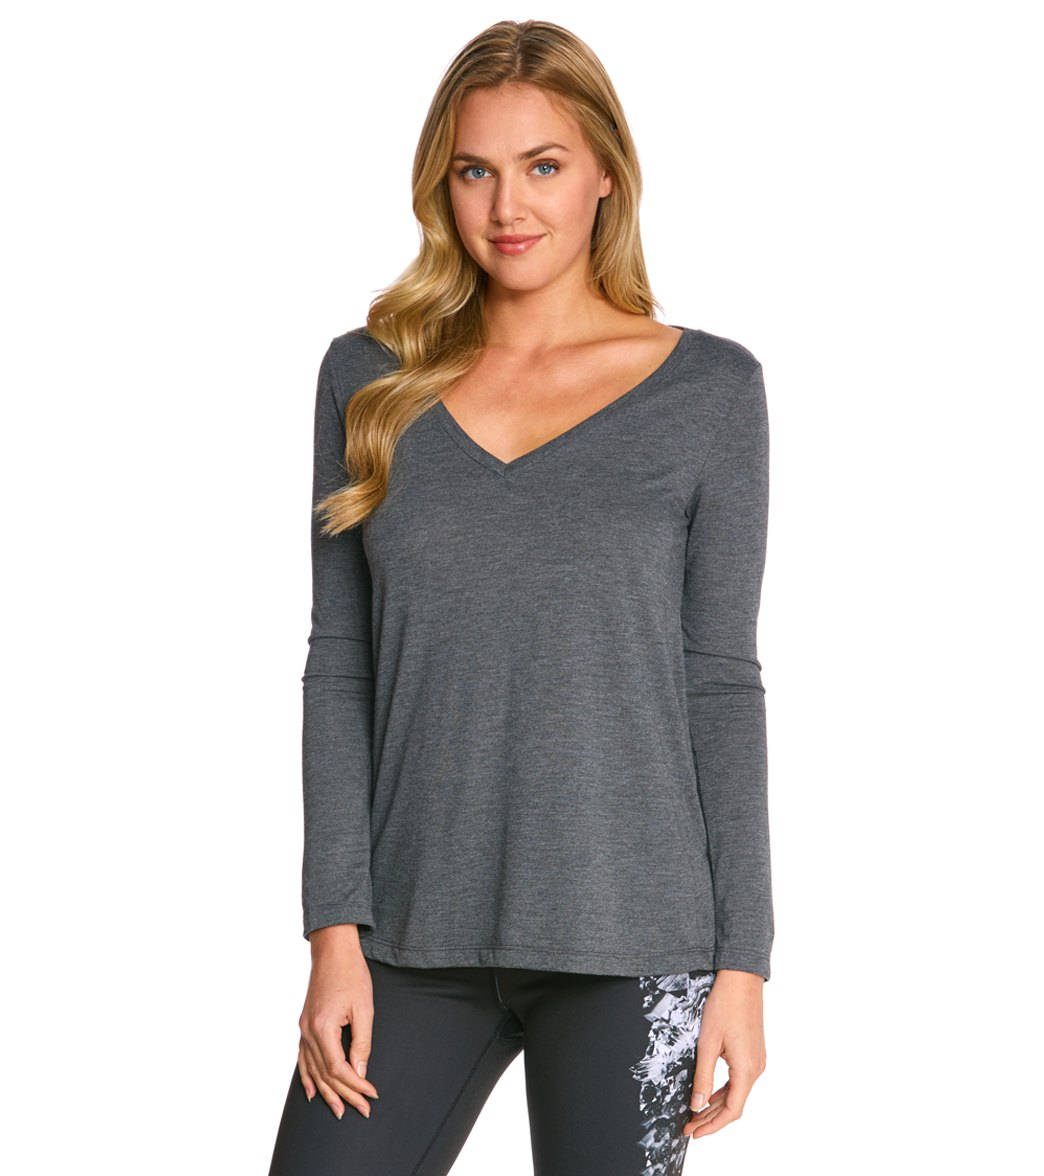 ccc52314f13 Bella + Canvas Flowy Long Sleeve V-Neck Tee at YogaOutlet.com